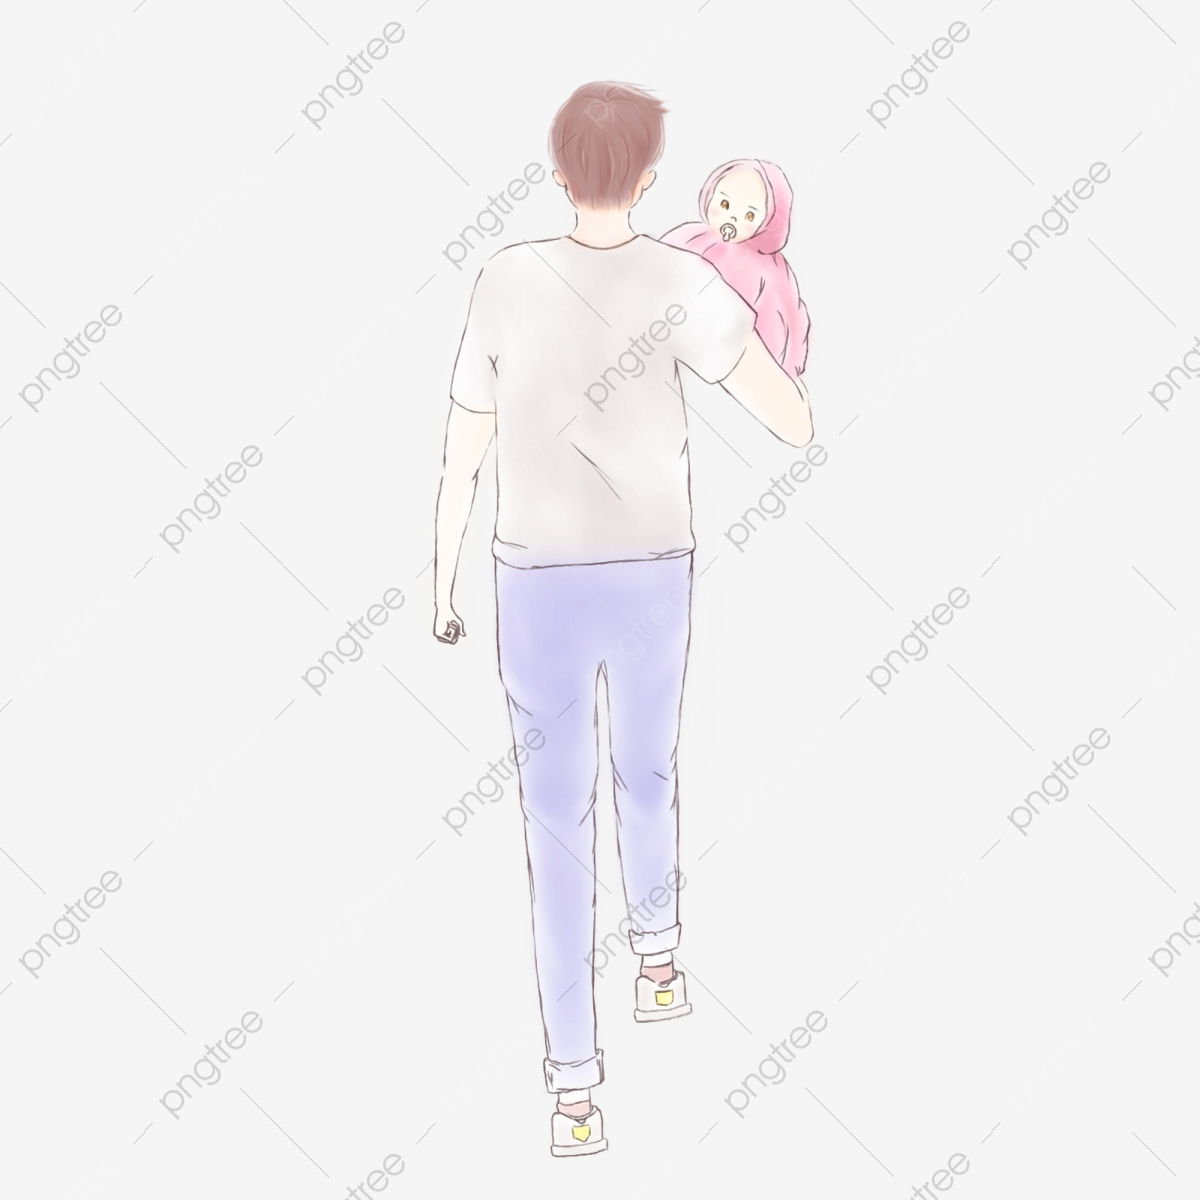 Fathers Day Hand Drawn Cartoon Aesthetic Color Father And Son Cartoon Characters Poster Decoration Illustration With Picture Png Transparent Clipart Image And Psd File For Free Download Want to see more posts tagged #cartoon aesthetic? https pngtree com freepng fathers day hand drawn cartoon aesthetic color father and son 3801445 html